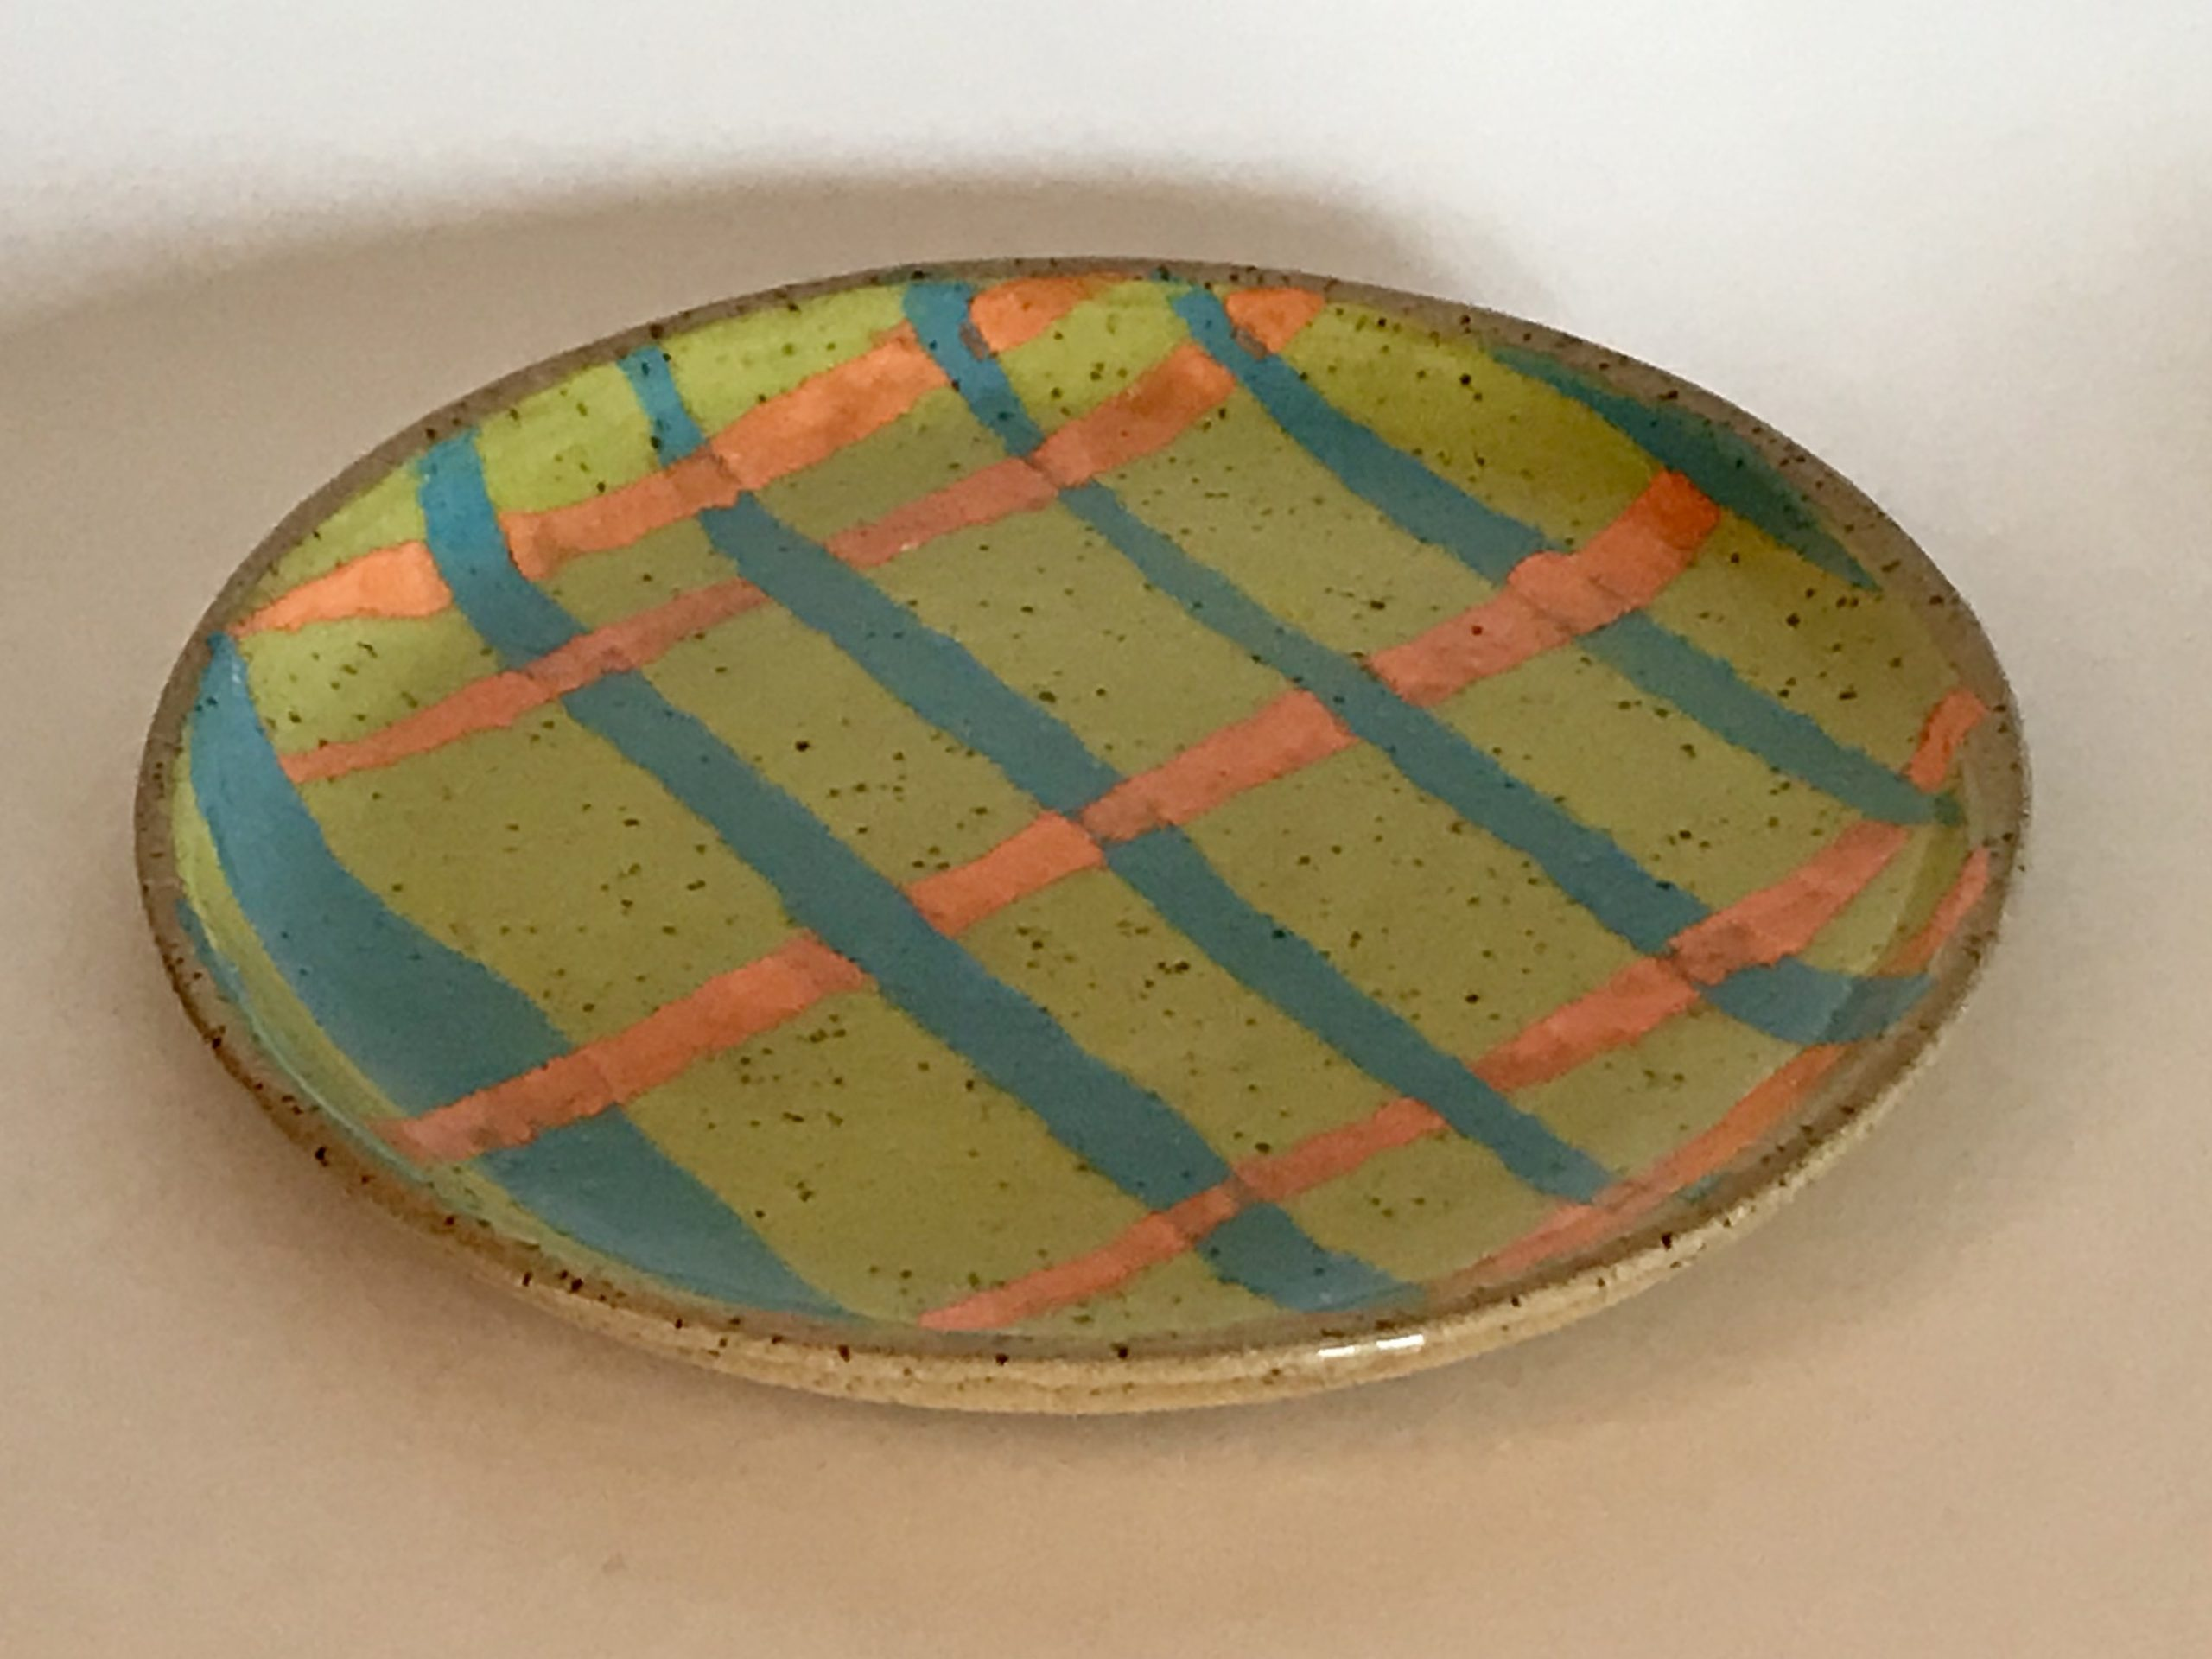 striped ceramic plate made from speckled clay